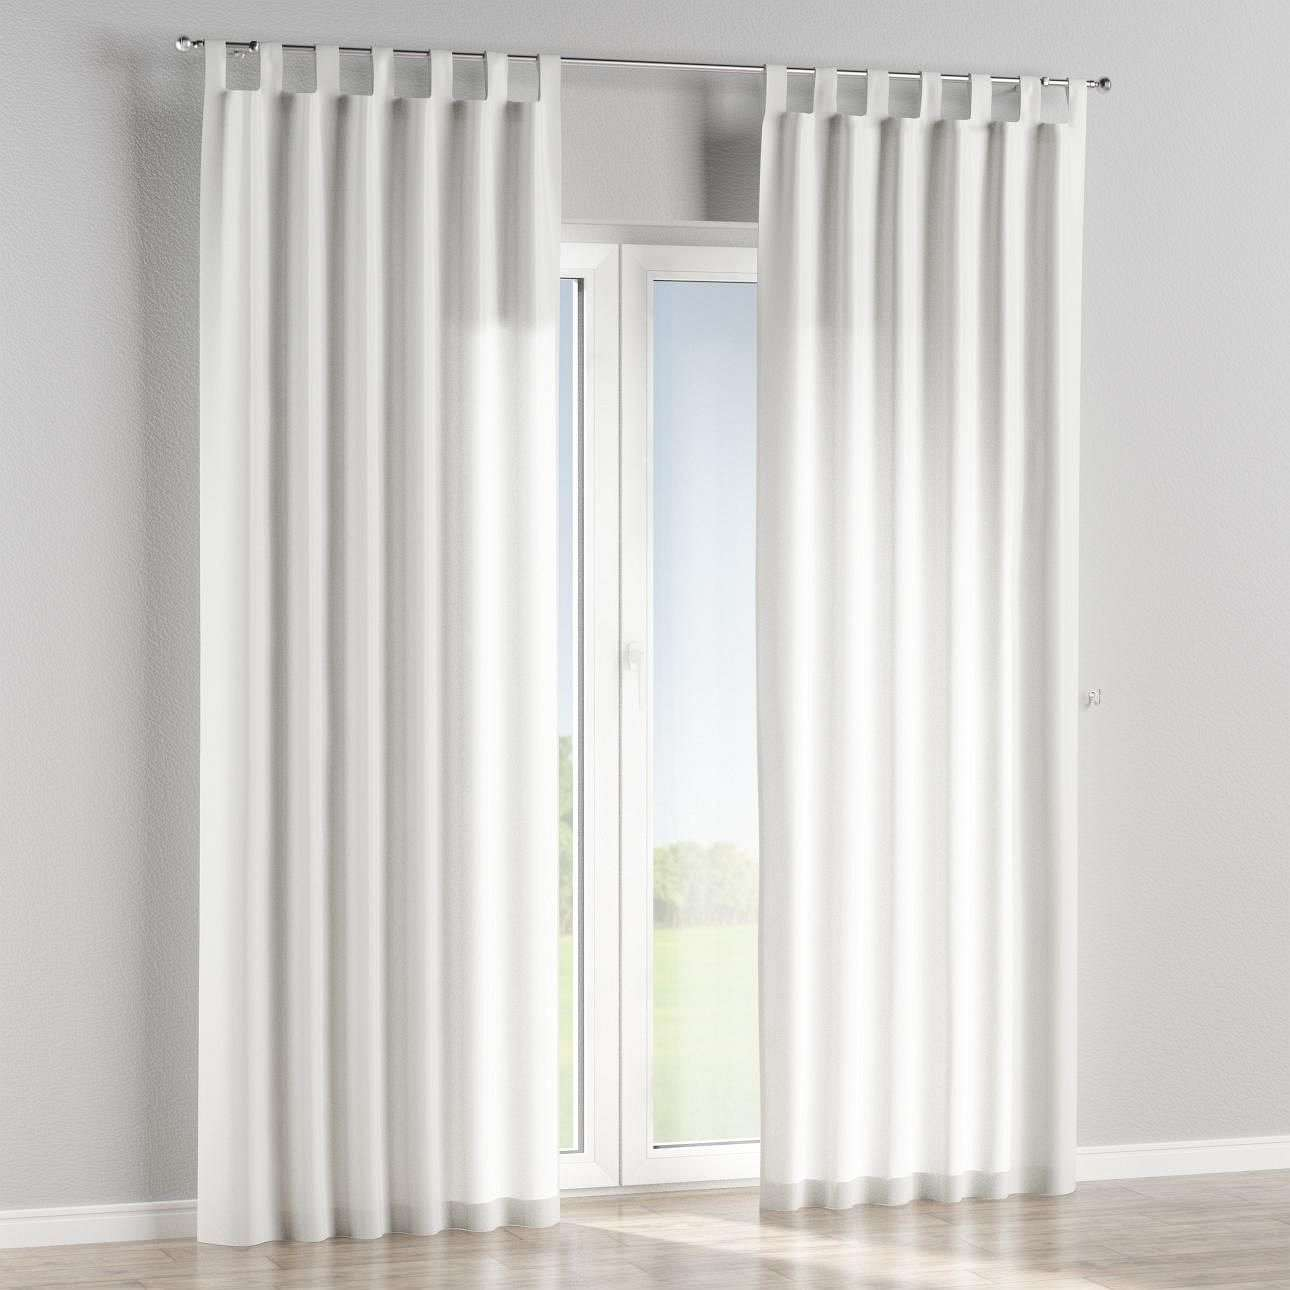 Tab top lined curtains in collection Londres, fabric: 140-43